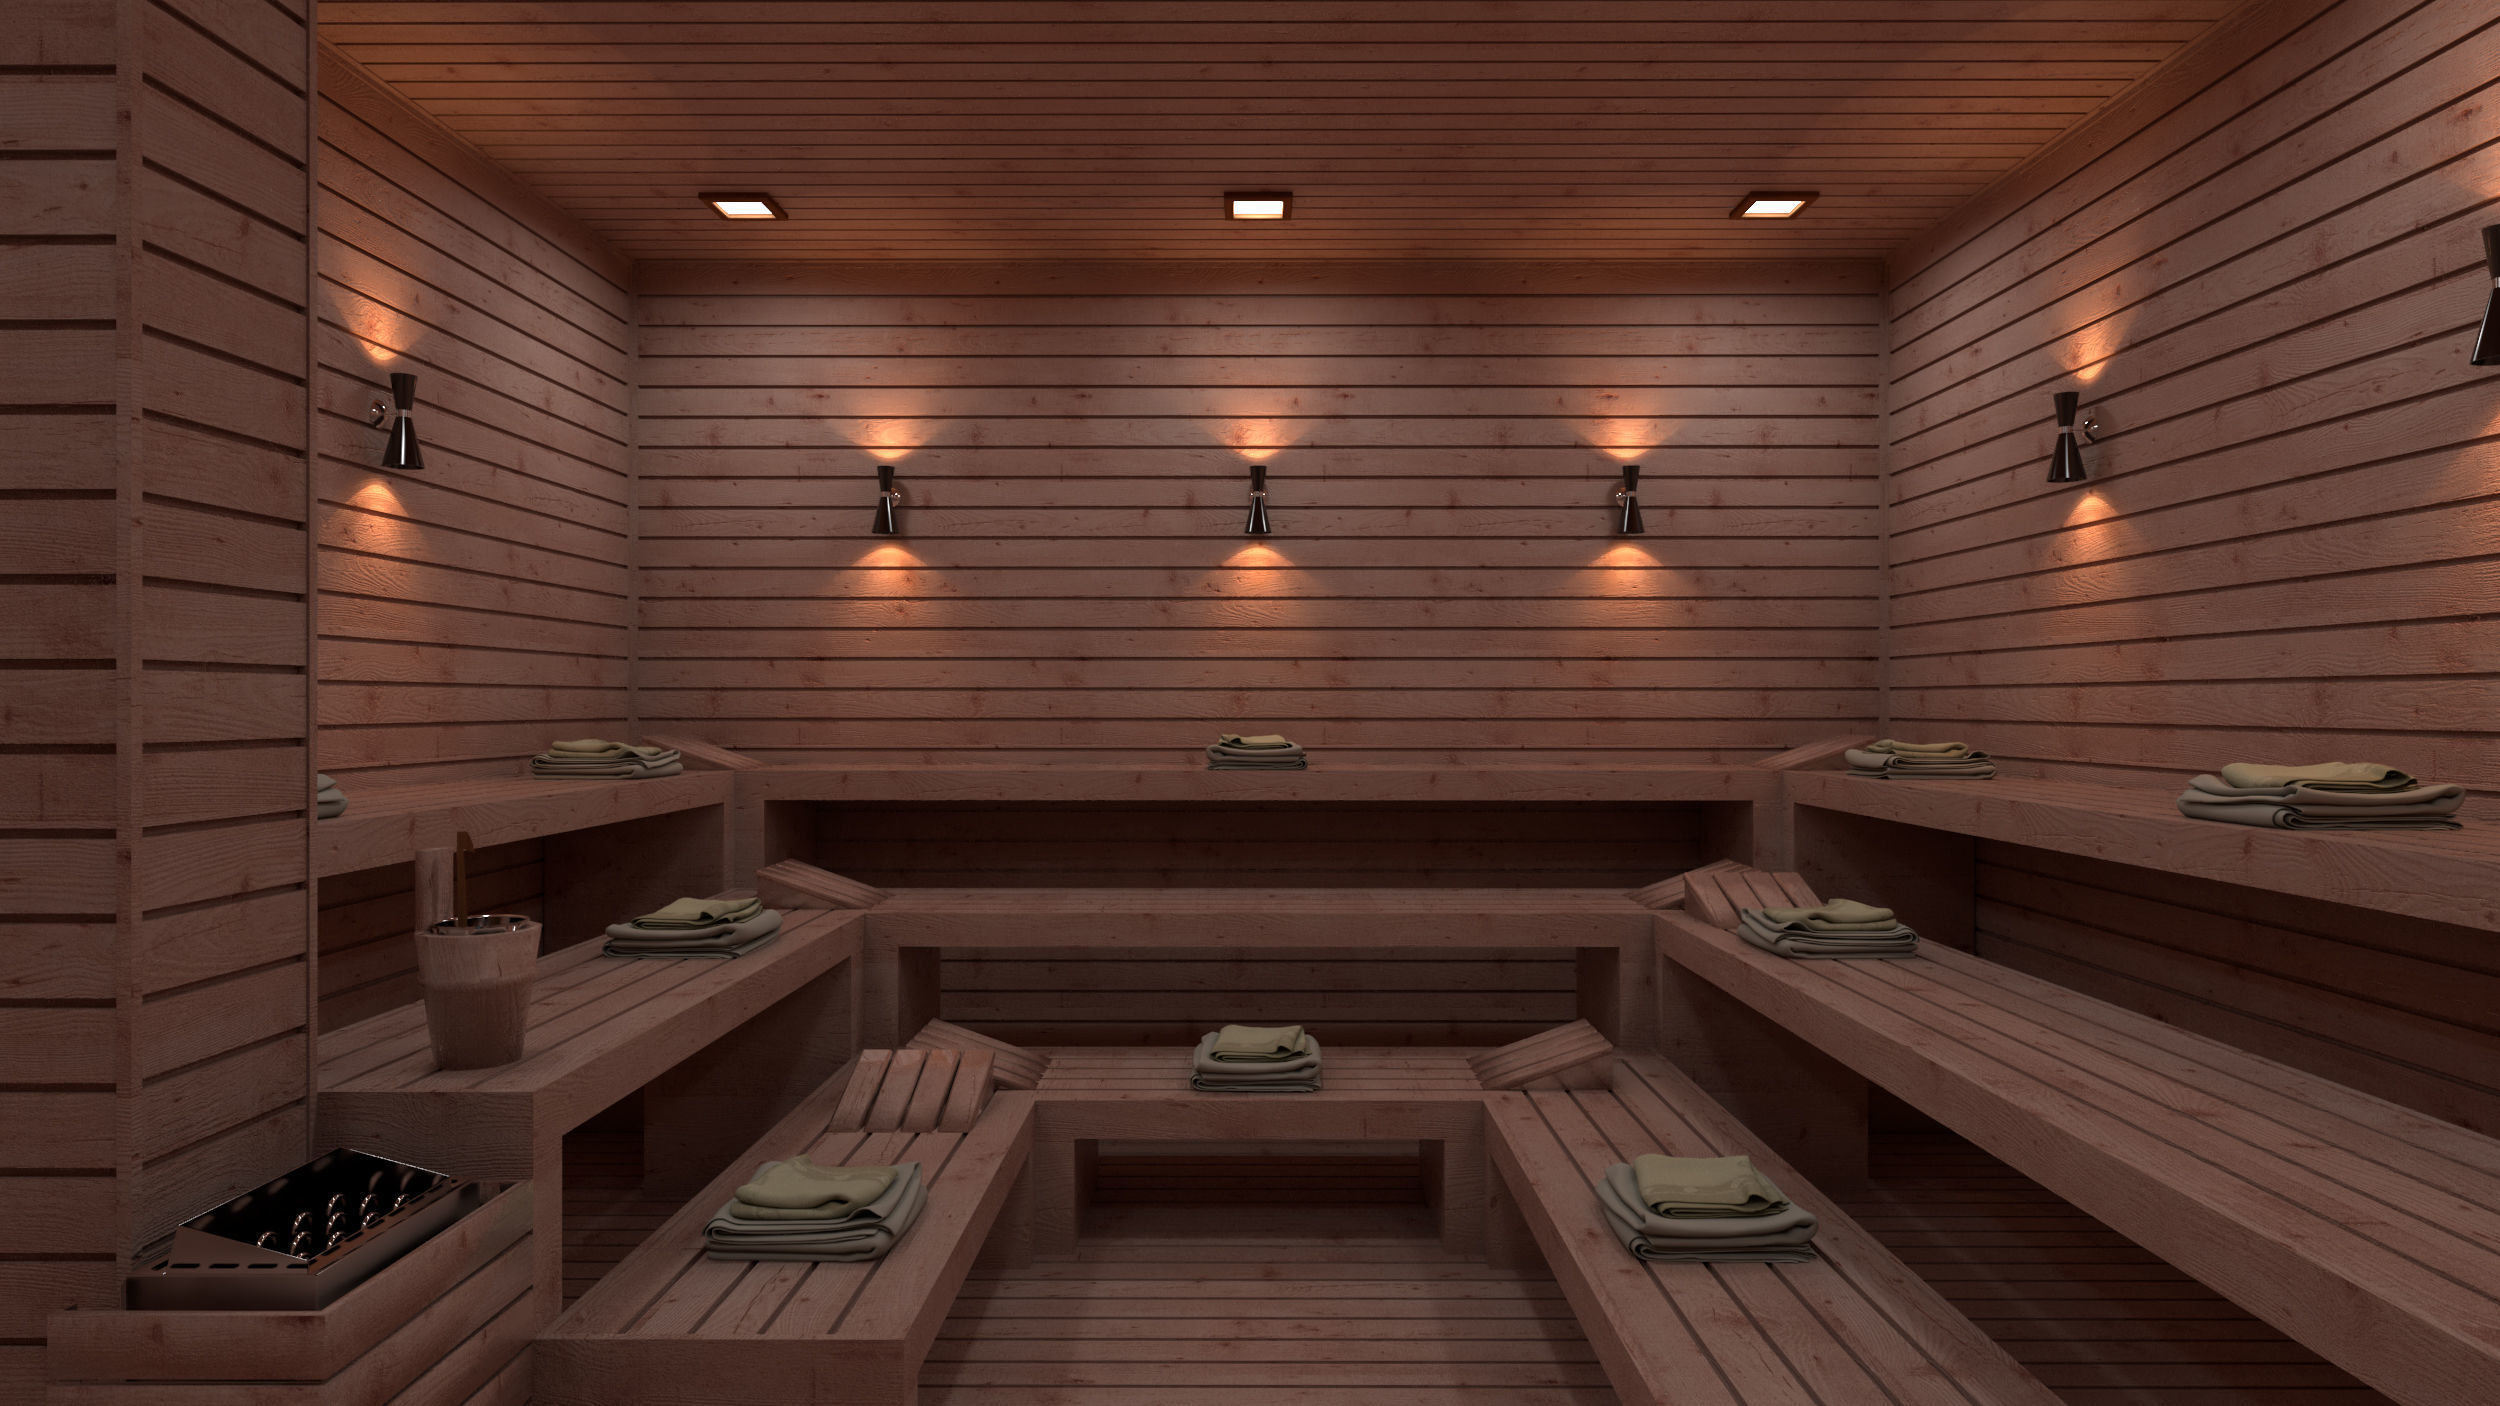 Sauna 3D Model Vray Settings